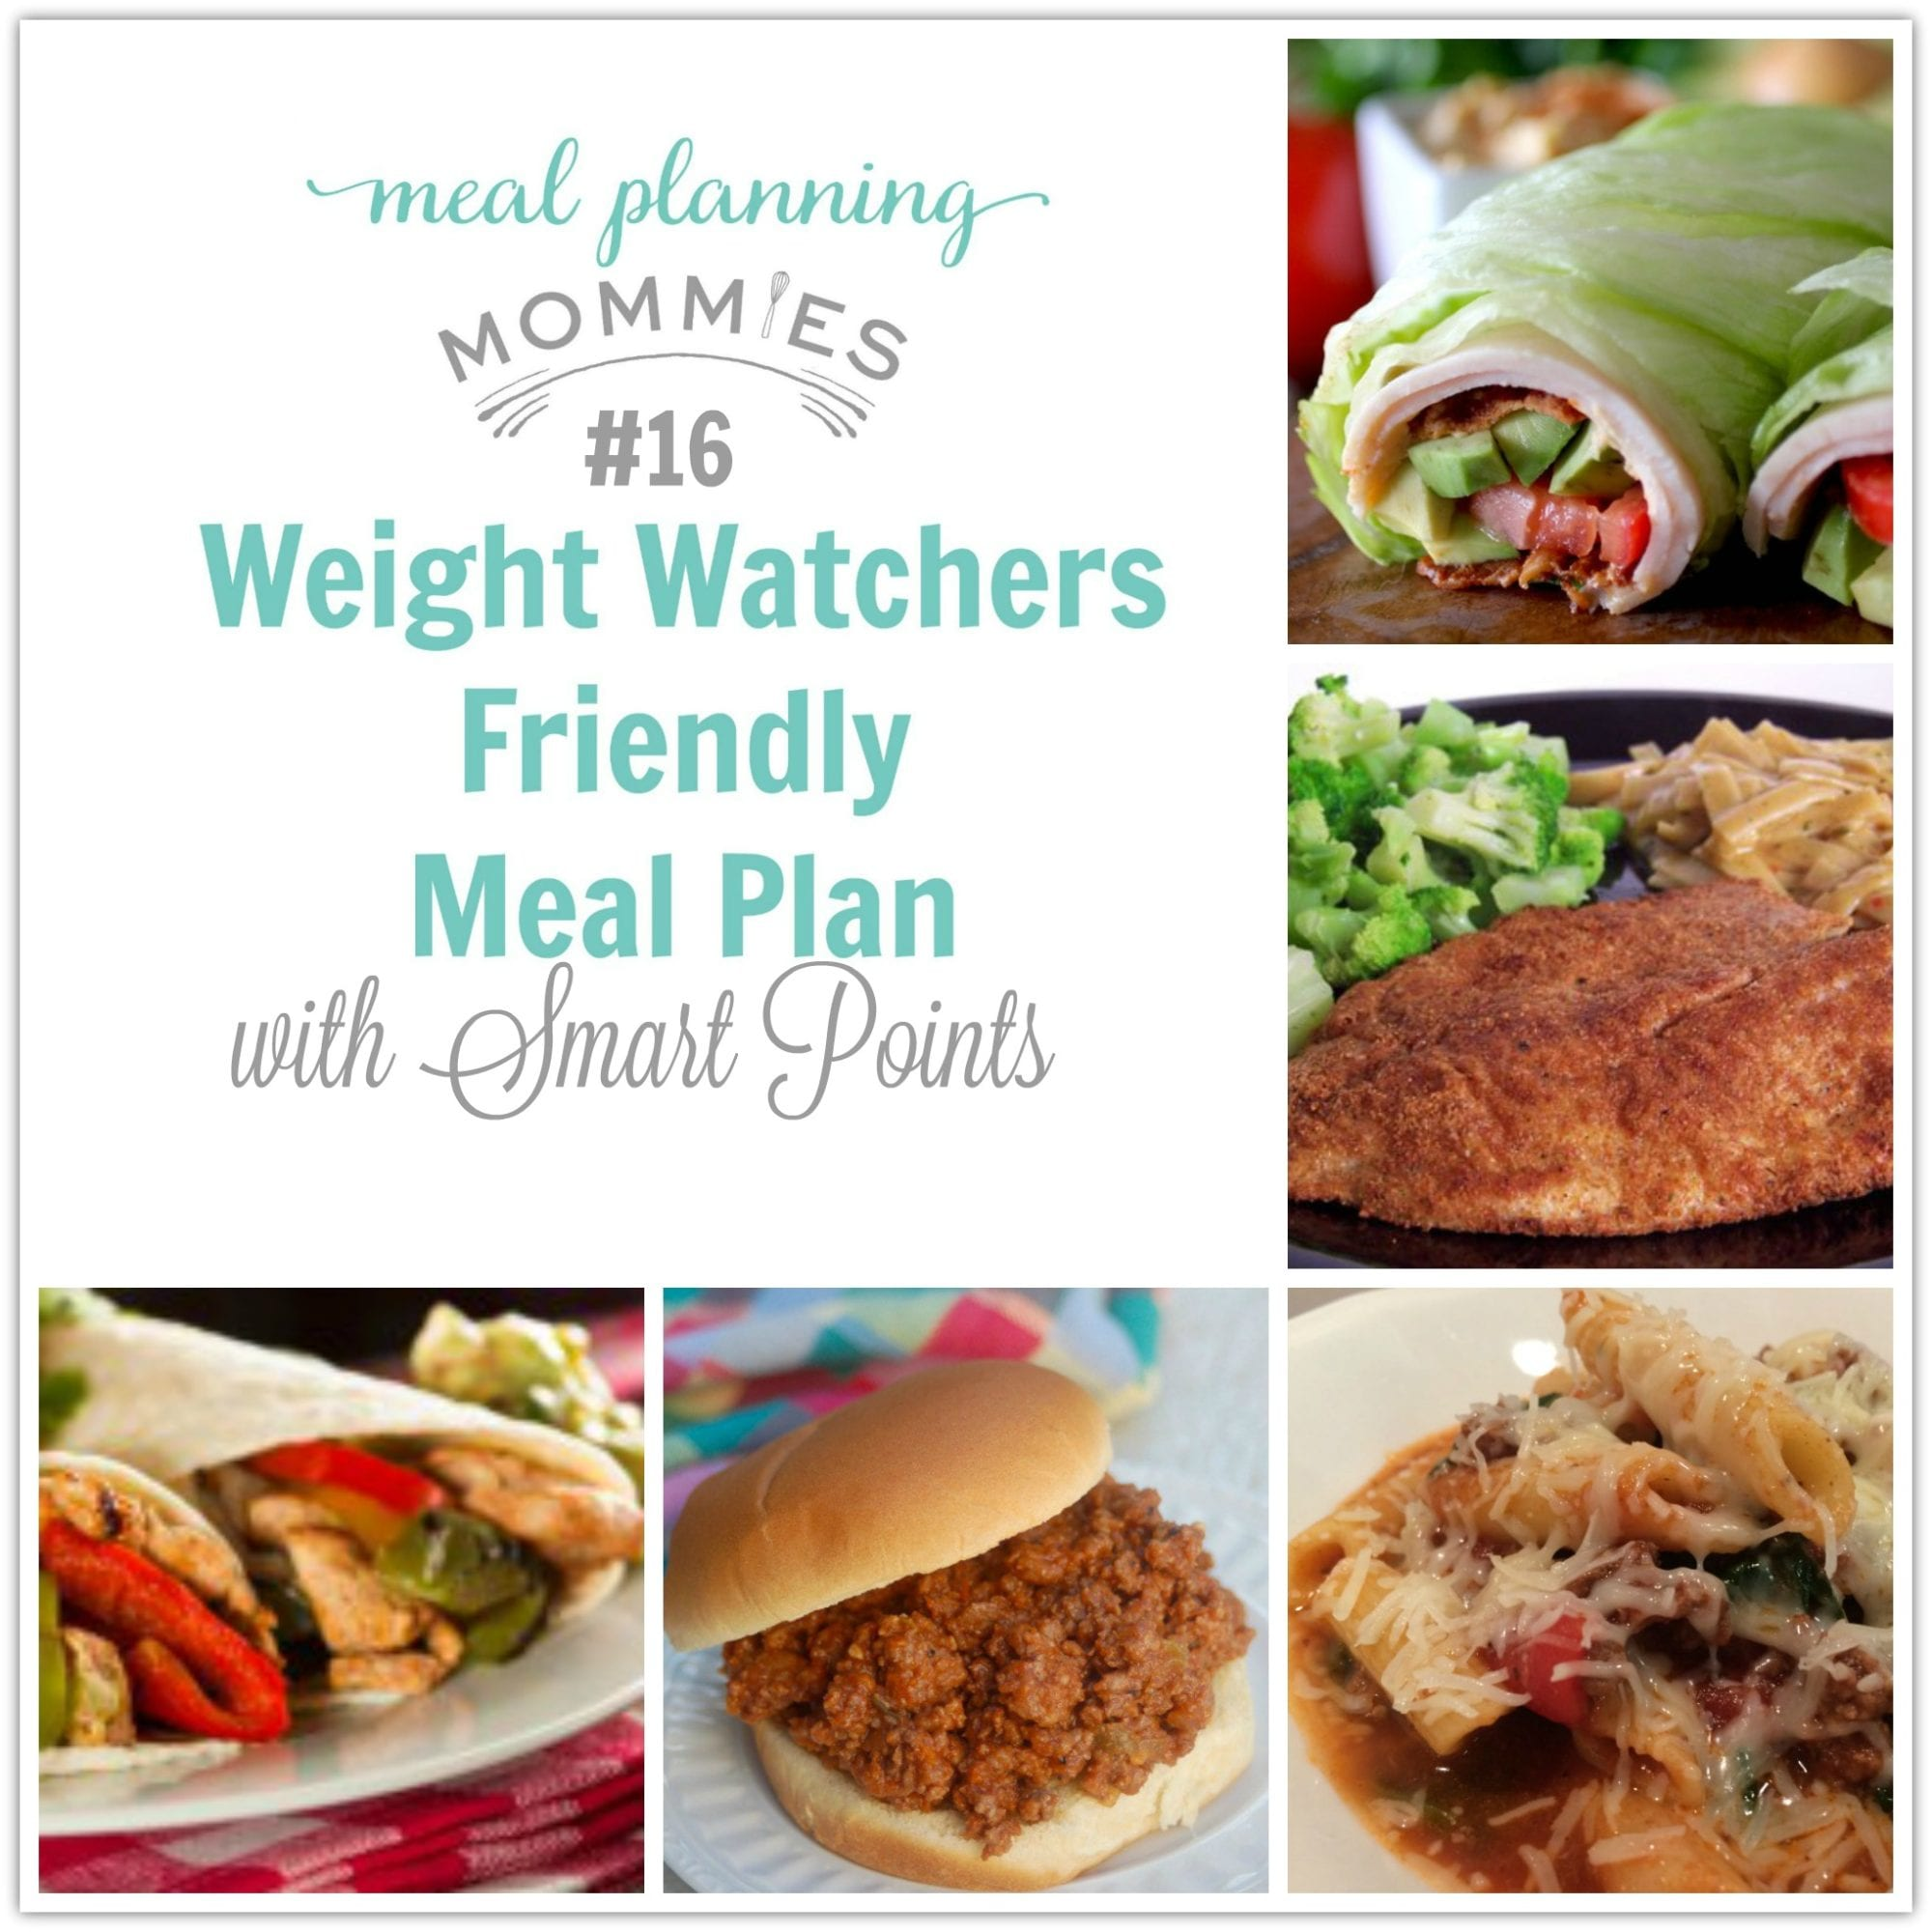 Weight Watcher Friendly Meal Plans Archives - Meal Planning Mommies